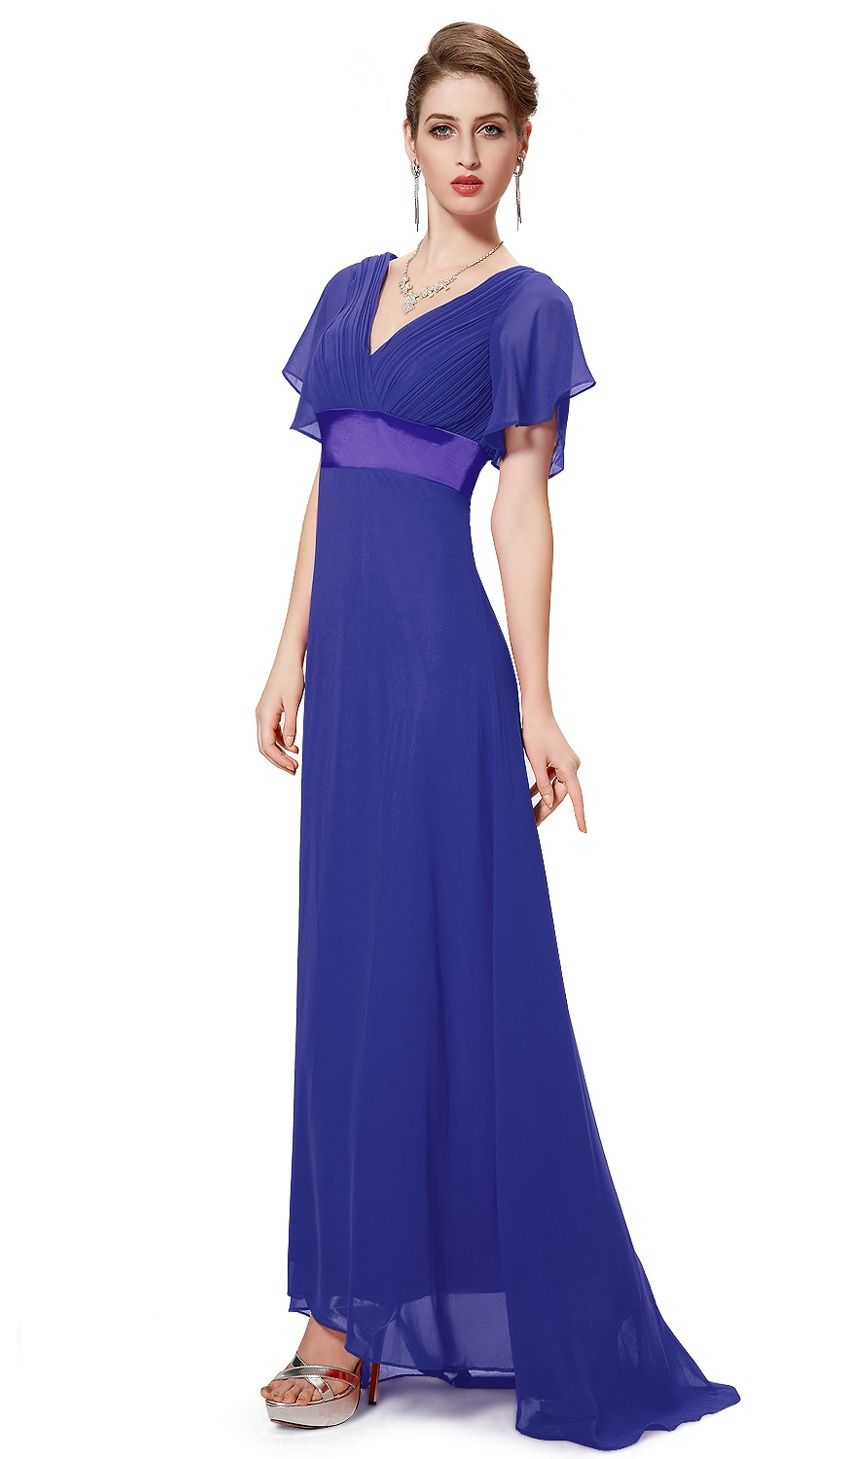 d3983ef9837a Ever-Pretty Womens V-Neck Vintage Plus Size Evening Homecoming Party  Bridesmaid Wedding Dress for Women 09890 Royal Blue US 16#Evening, #Size, # Party